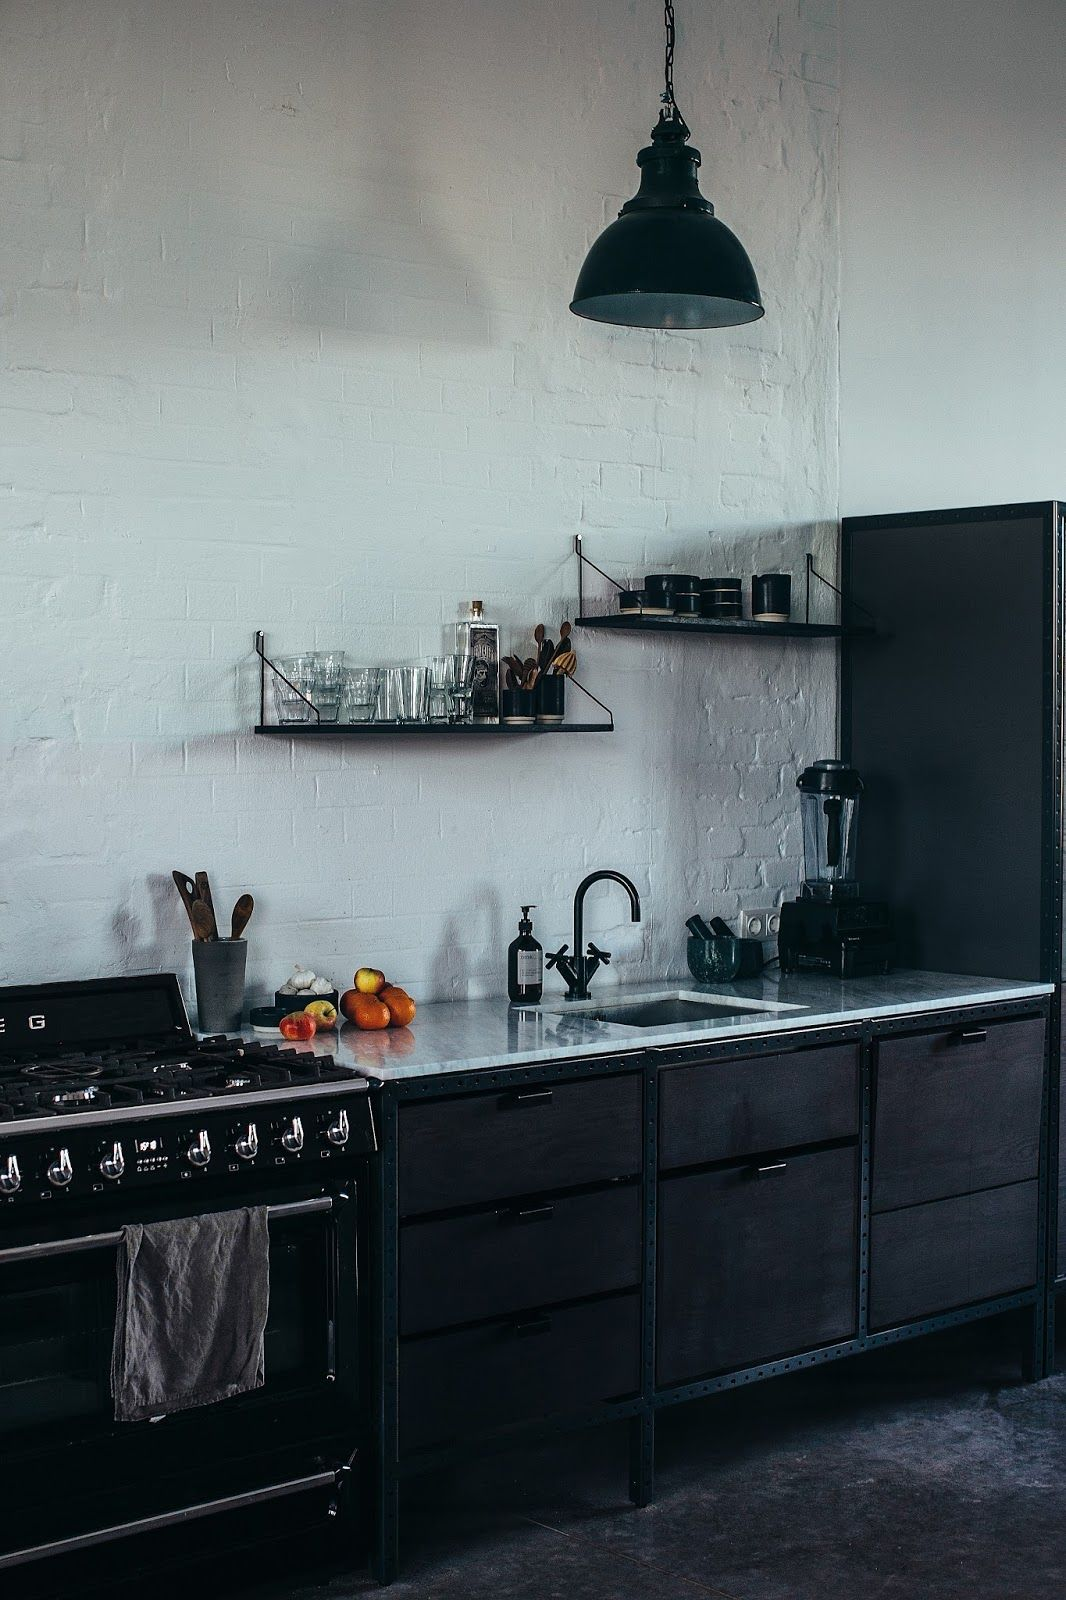 Frama : Design minimaliste sur fond de patine | Studio, Kitchens and ...